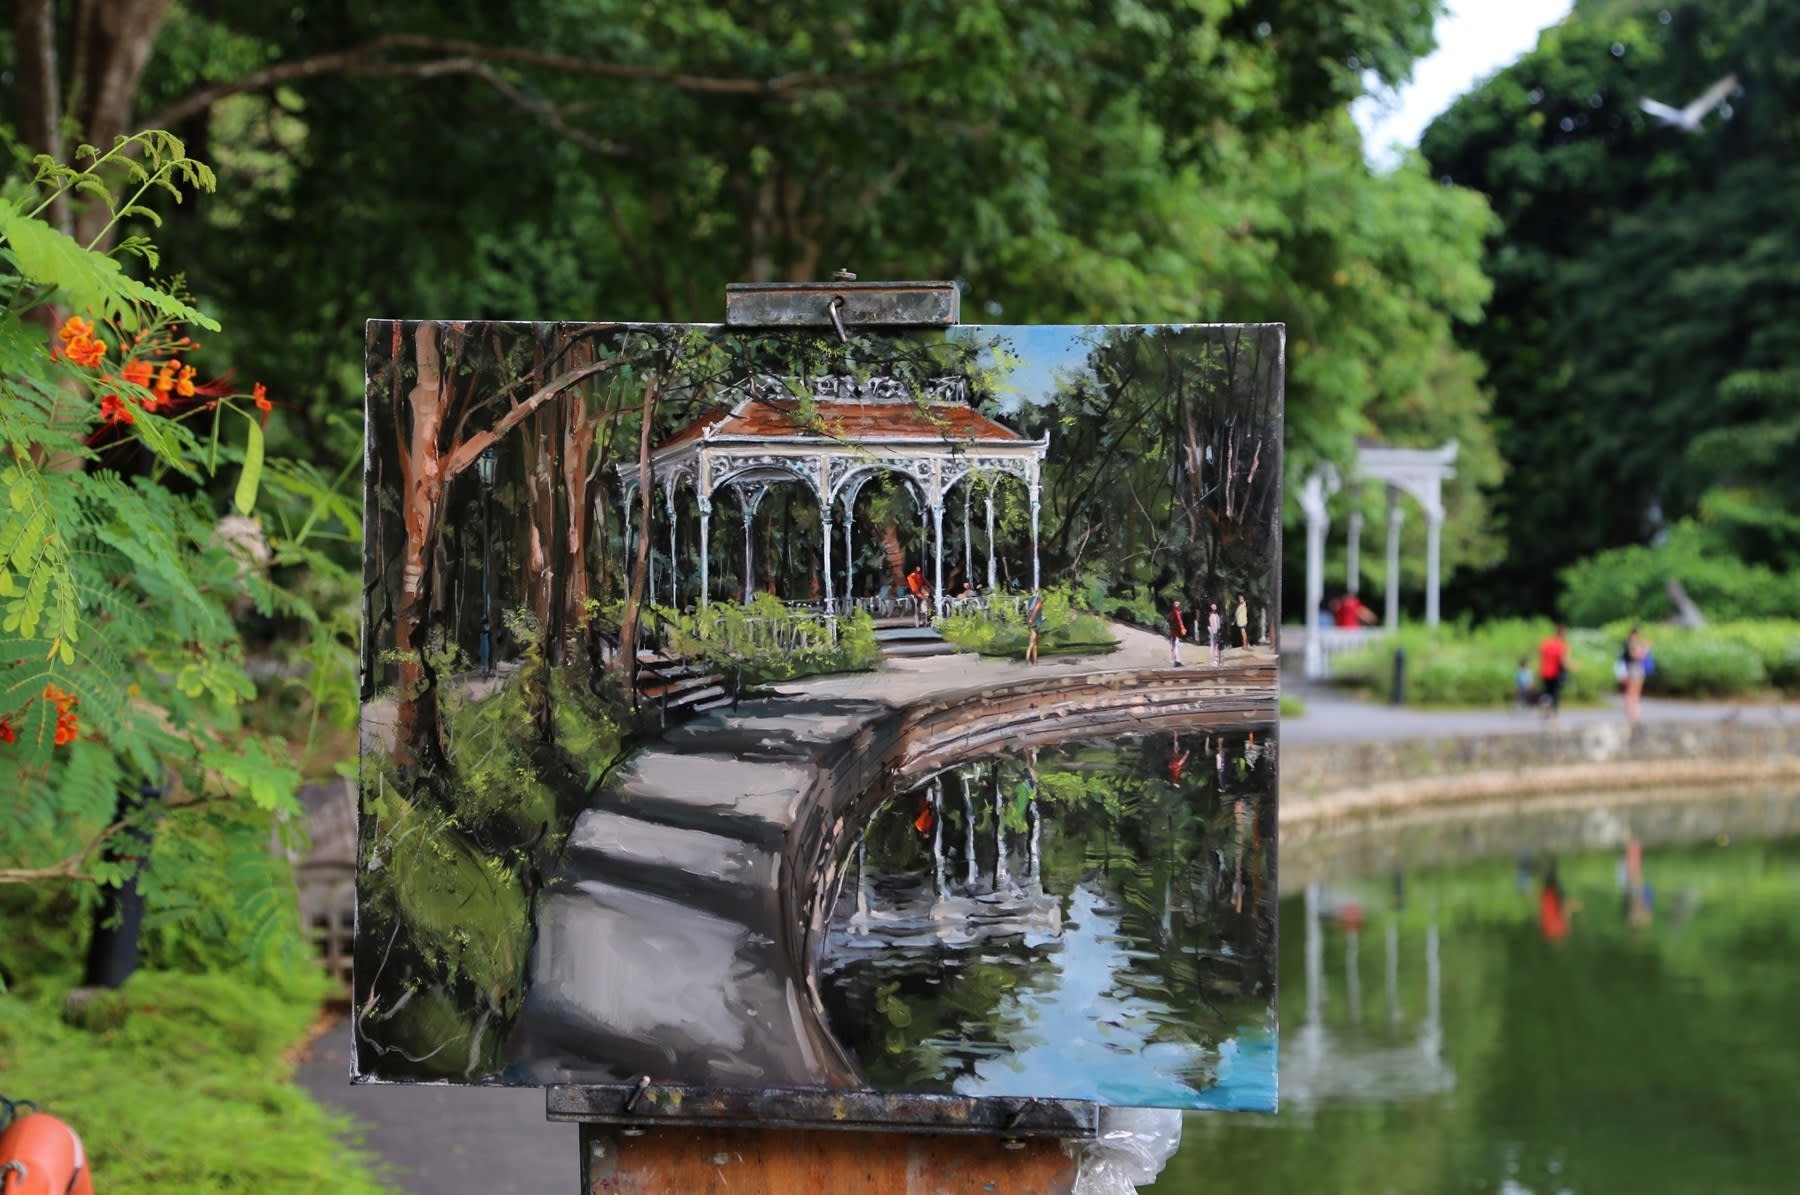 02 SEPTEMBER 2019 SWAN LAKE, SINGAPORE BOTANIC GARDENS The Swan Lake Gazebo photo: Agata Byrne